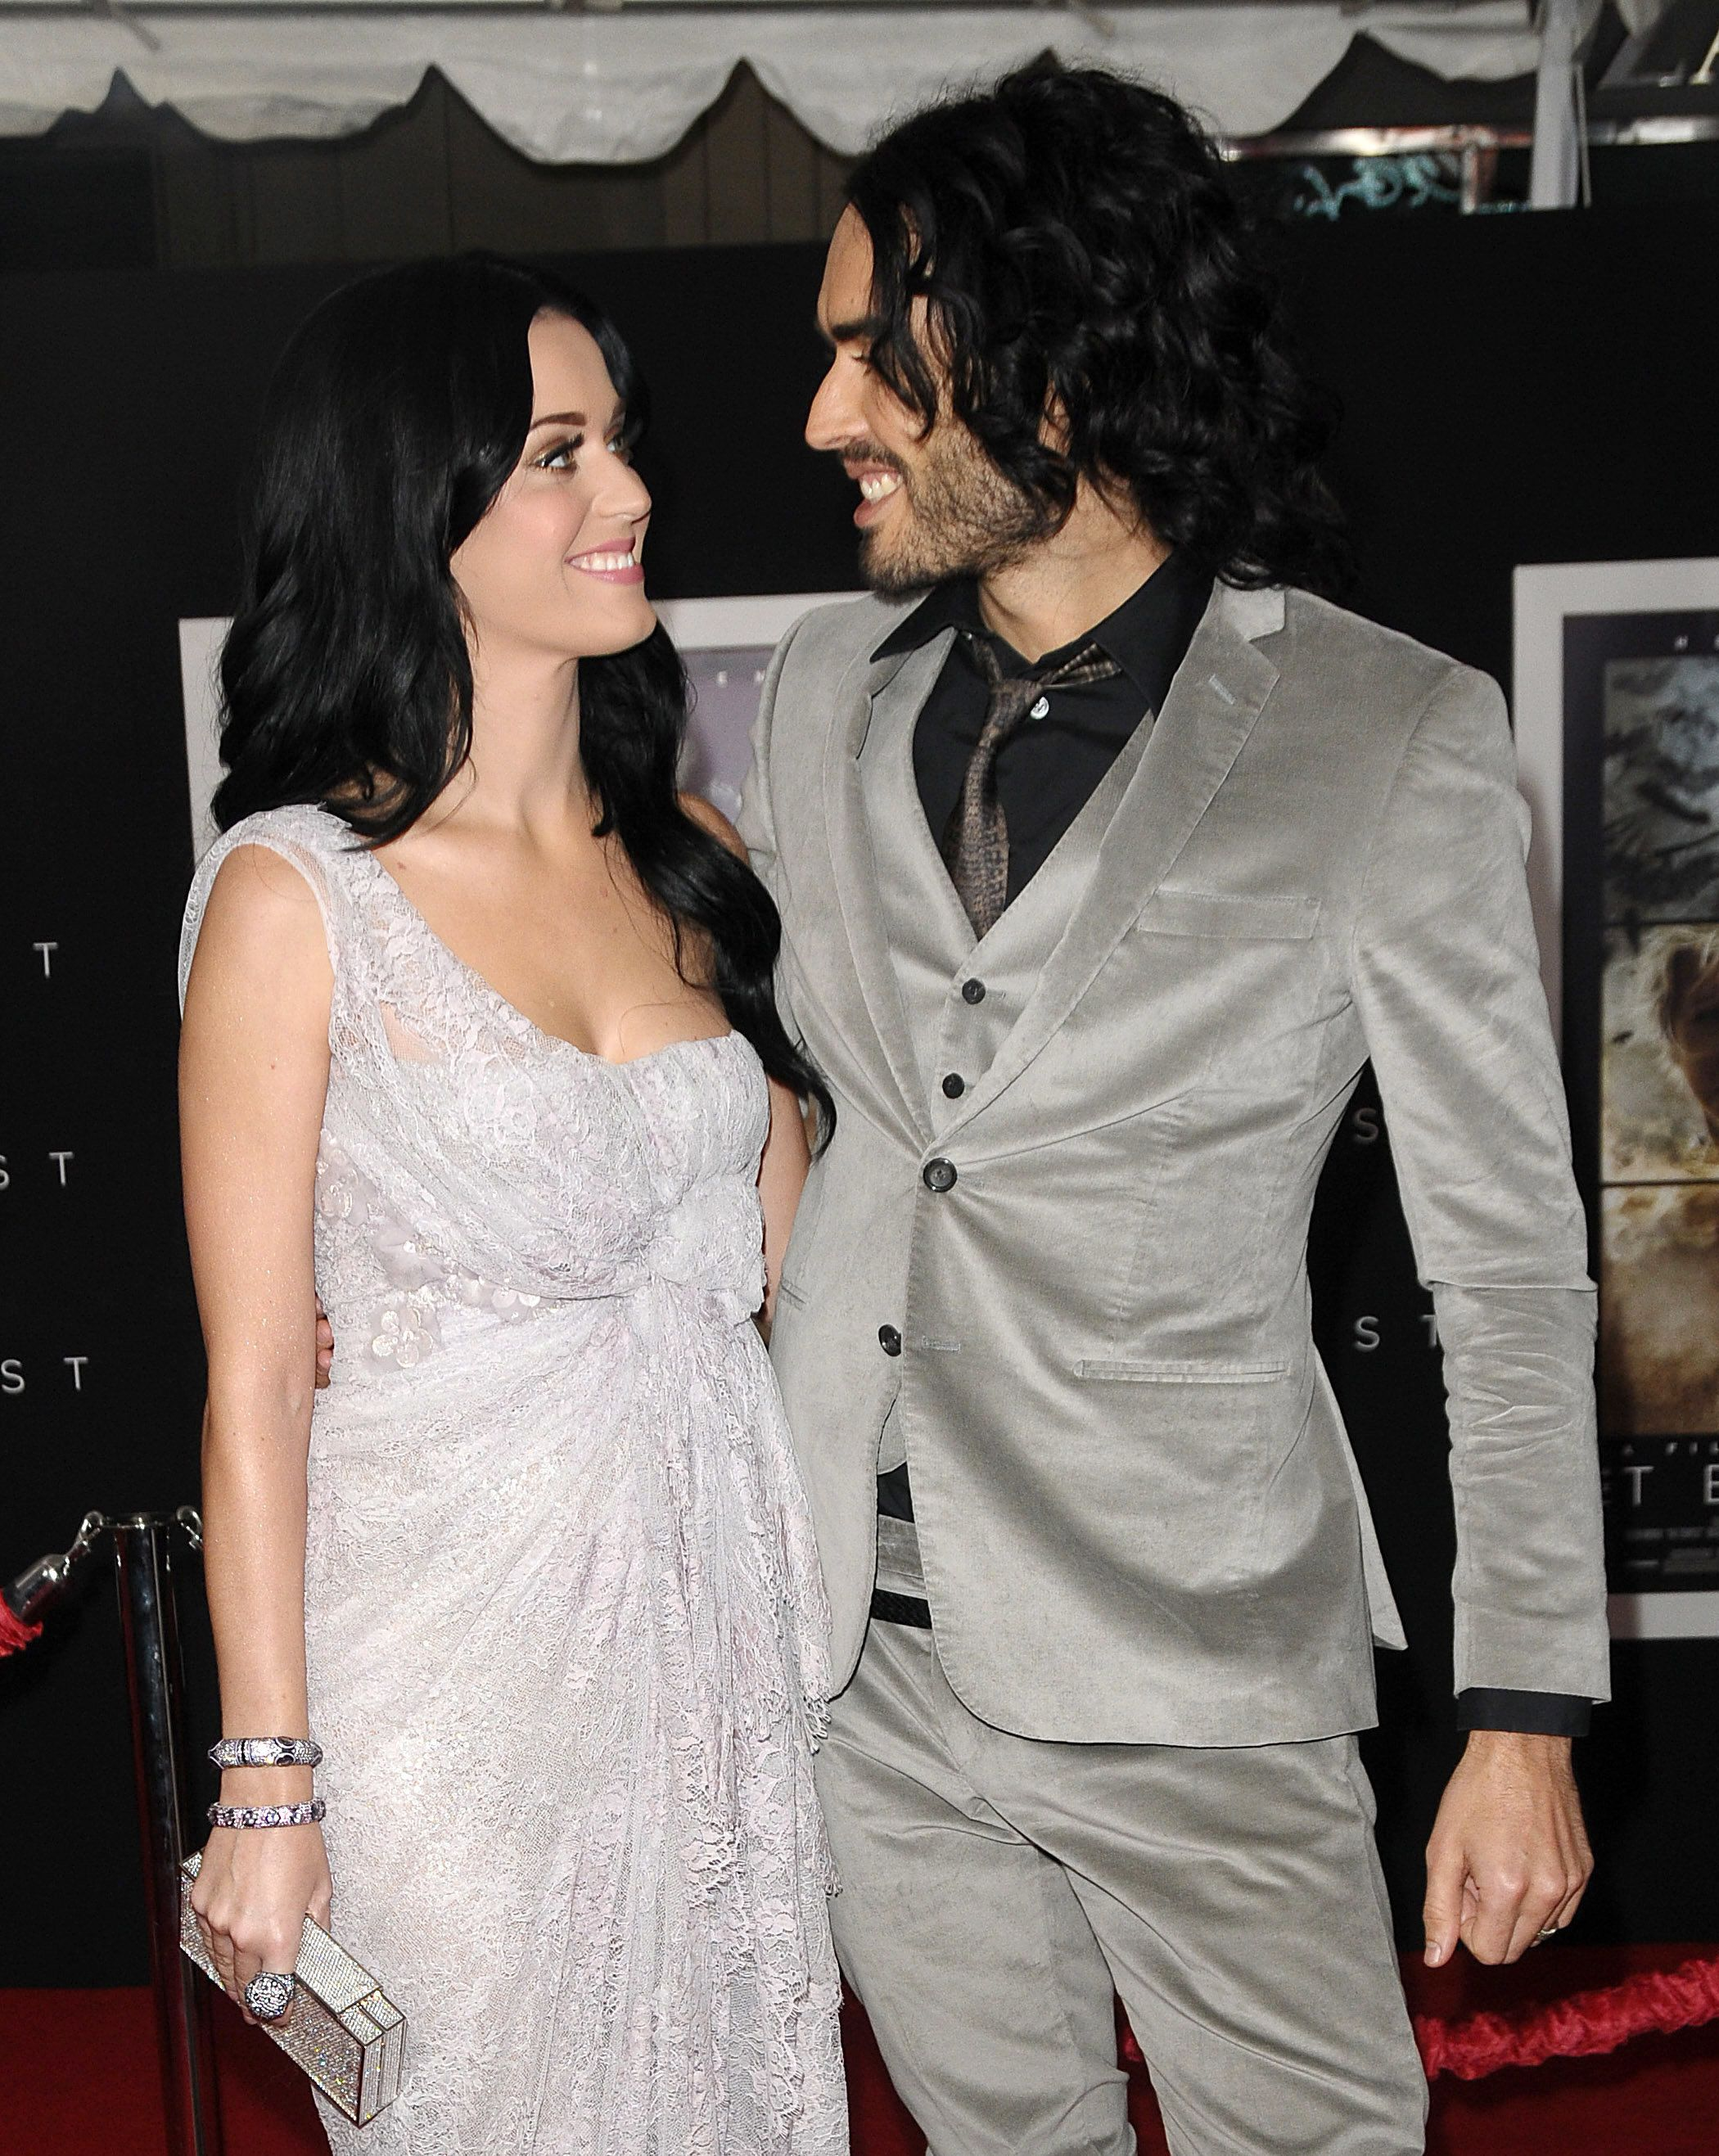 Russell Brand Reveals The Real Reason He Split From Katy Perry